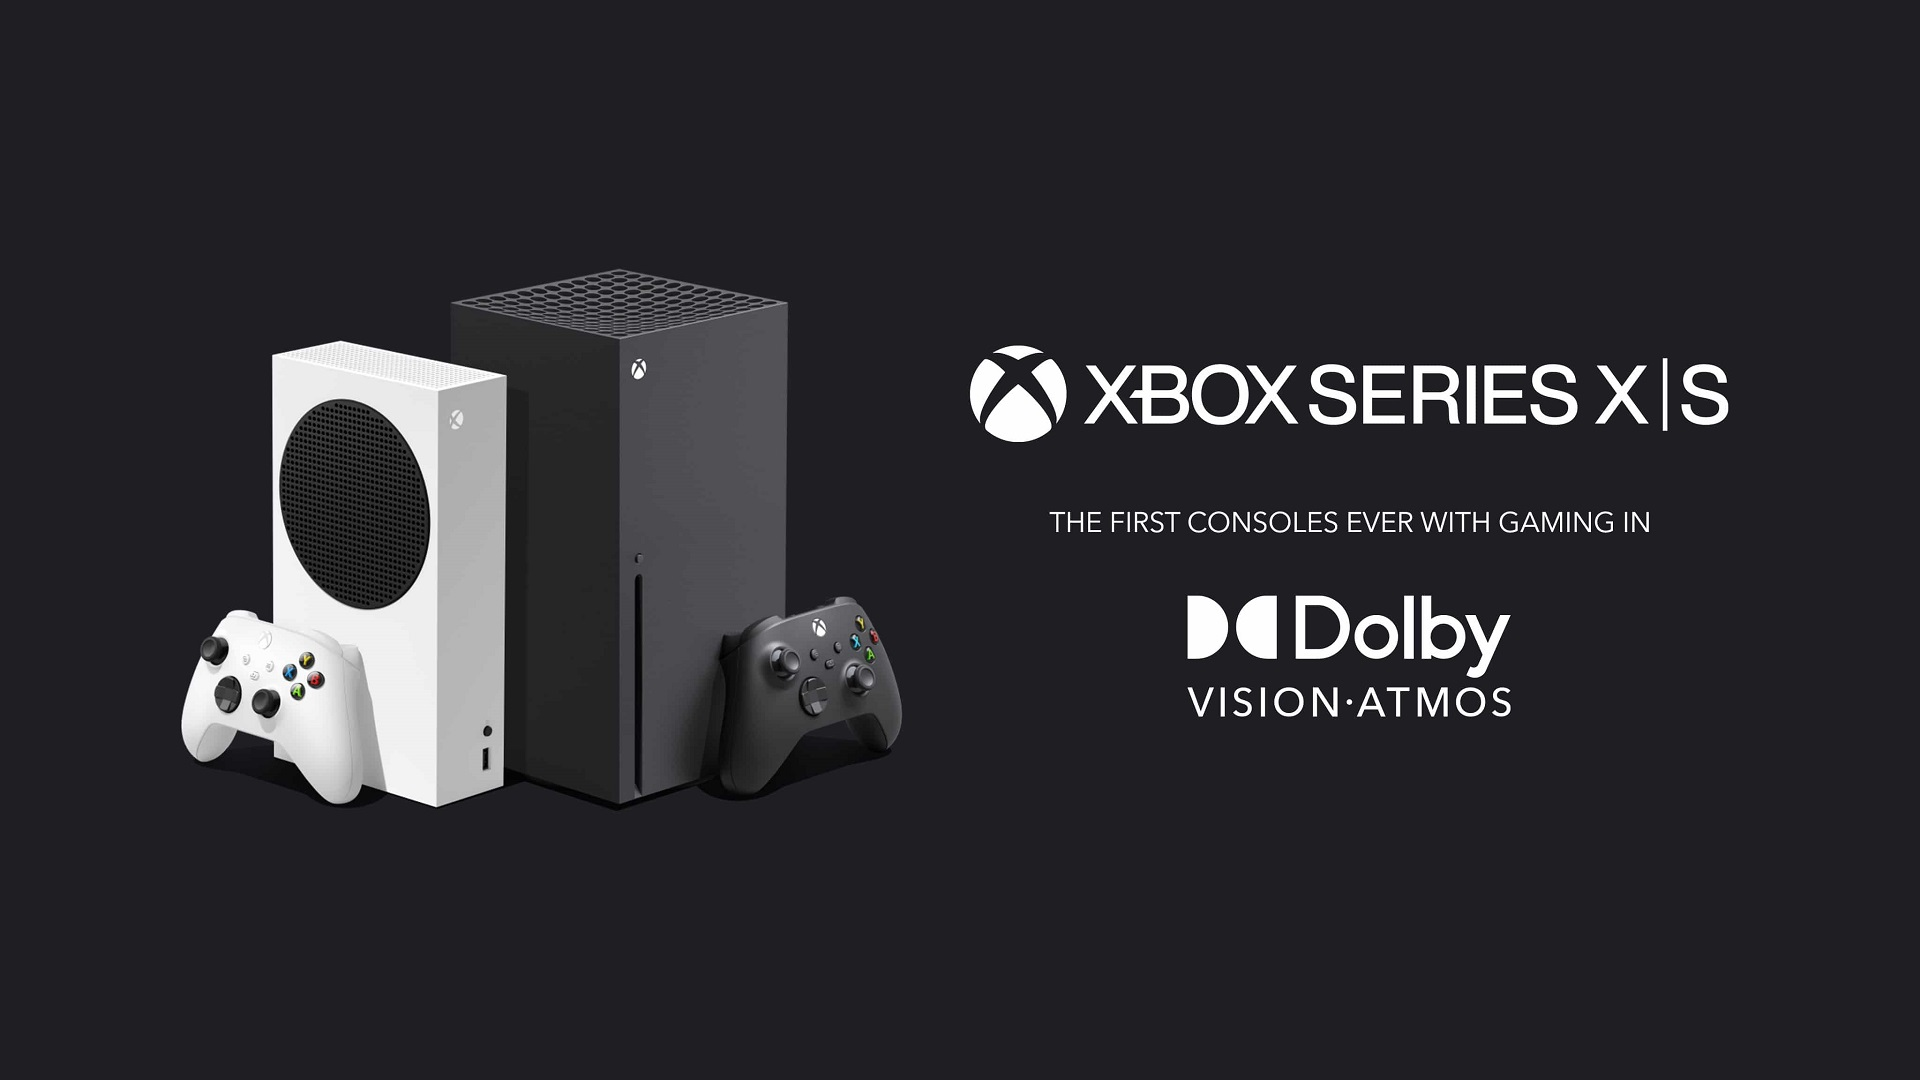 Xbox Series X/S: Dolby Atmos Dolby Vision